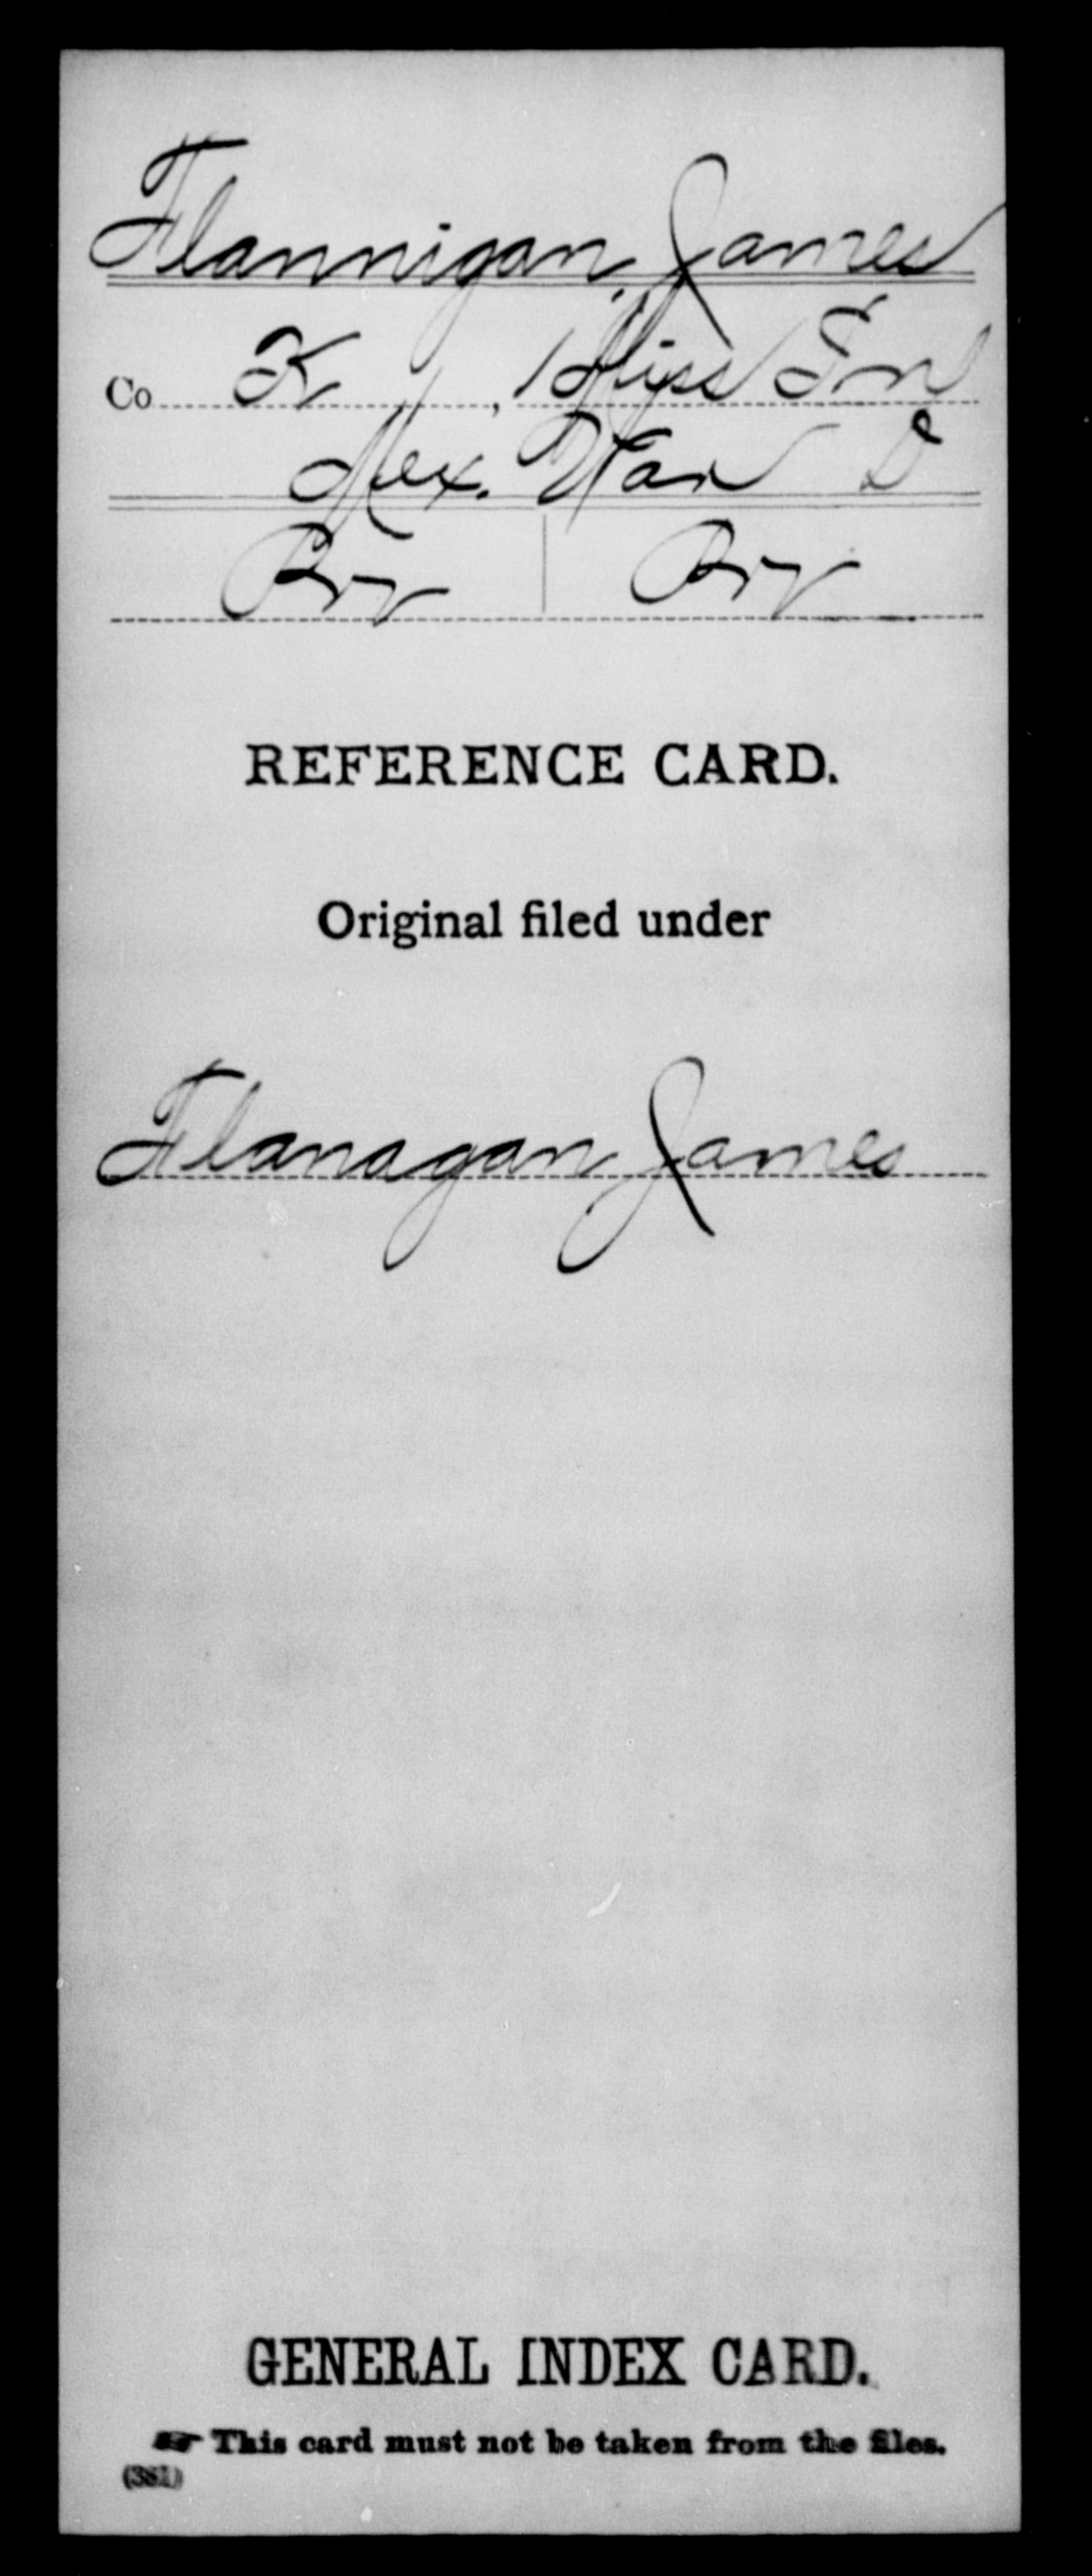 Flannigan, James - State: Mississippi - Regiment: 1 Mississippi Infantry, Company K - Enlistment Rank: Pvt - Discharge Rank: Pvt